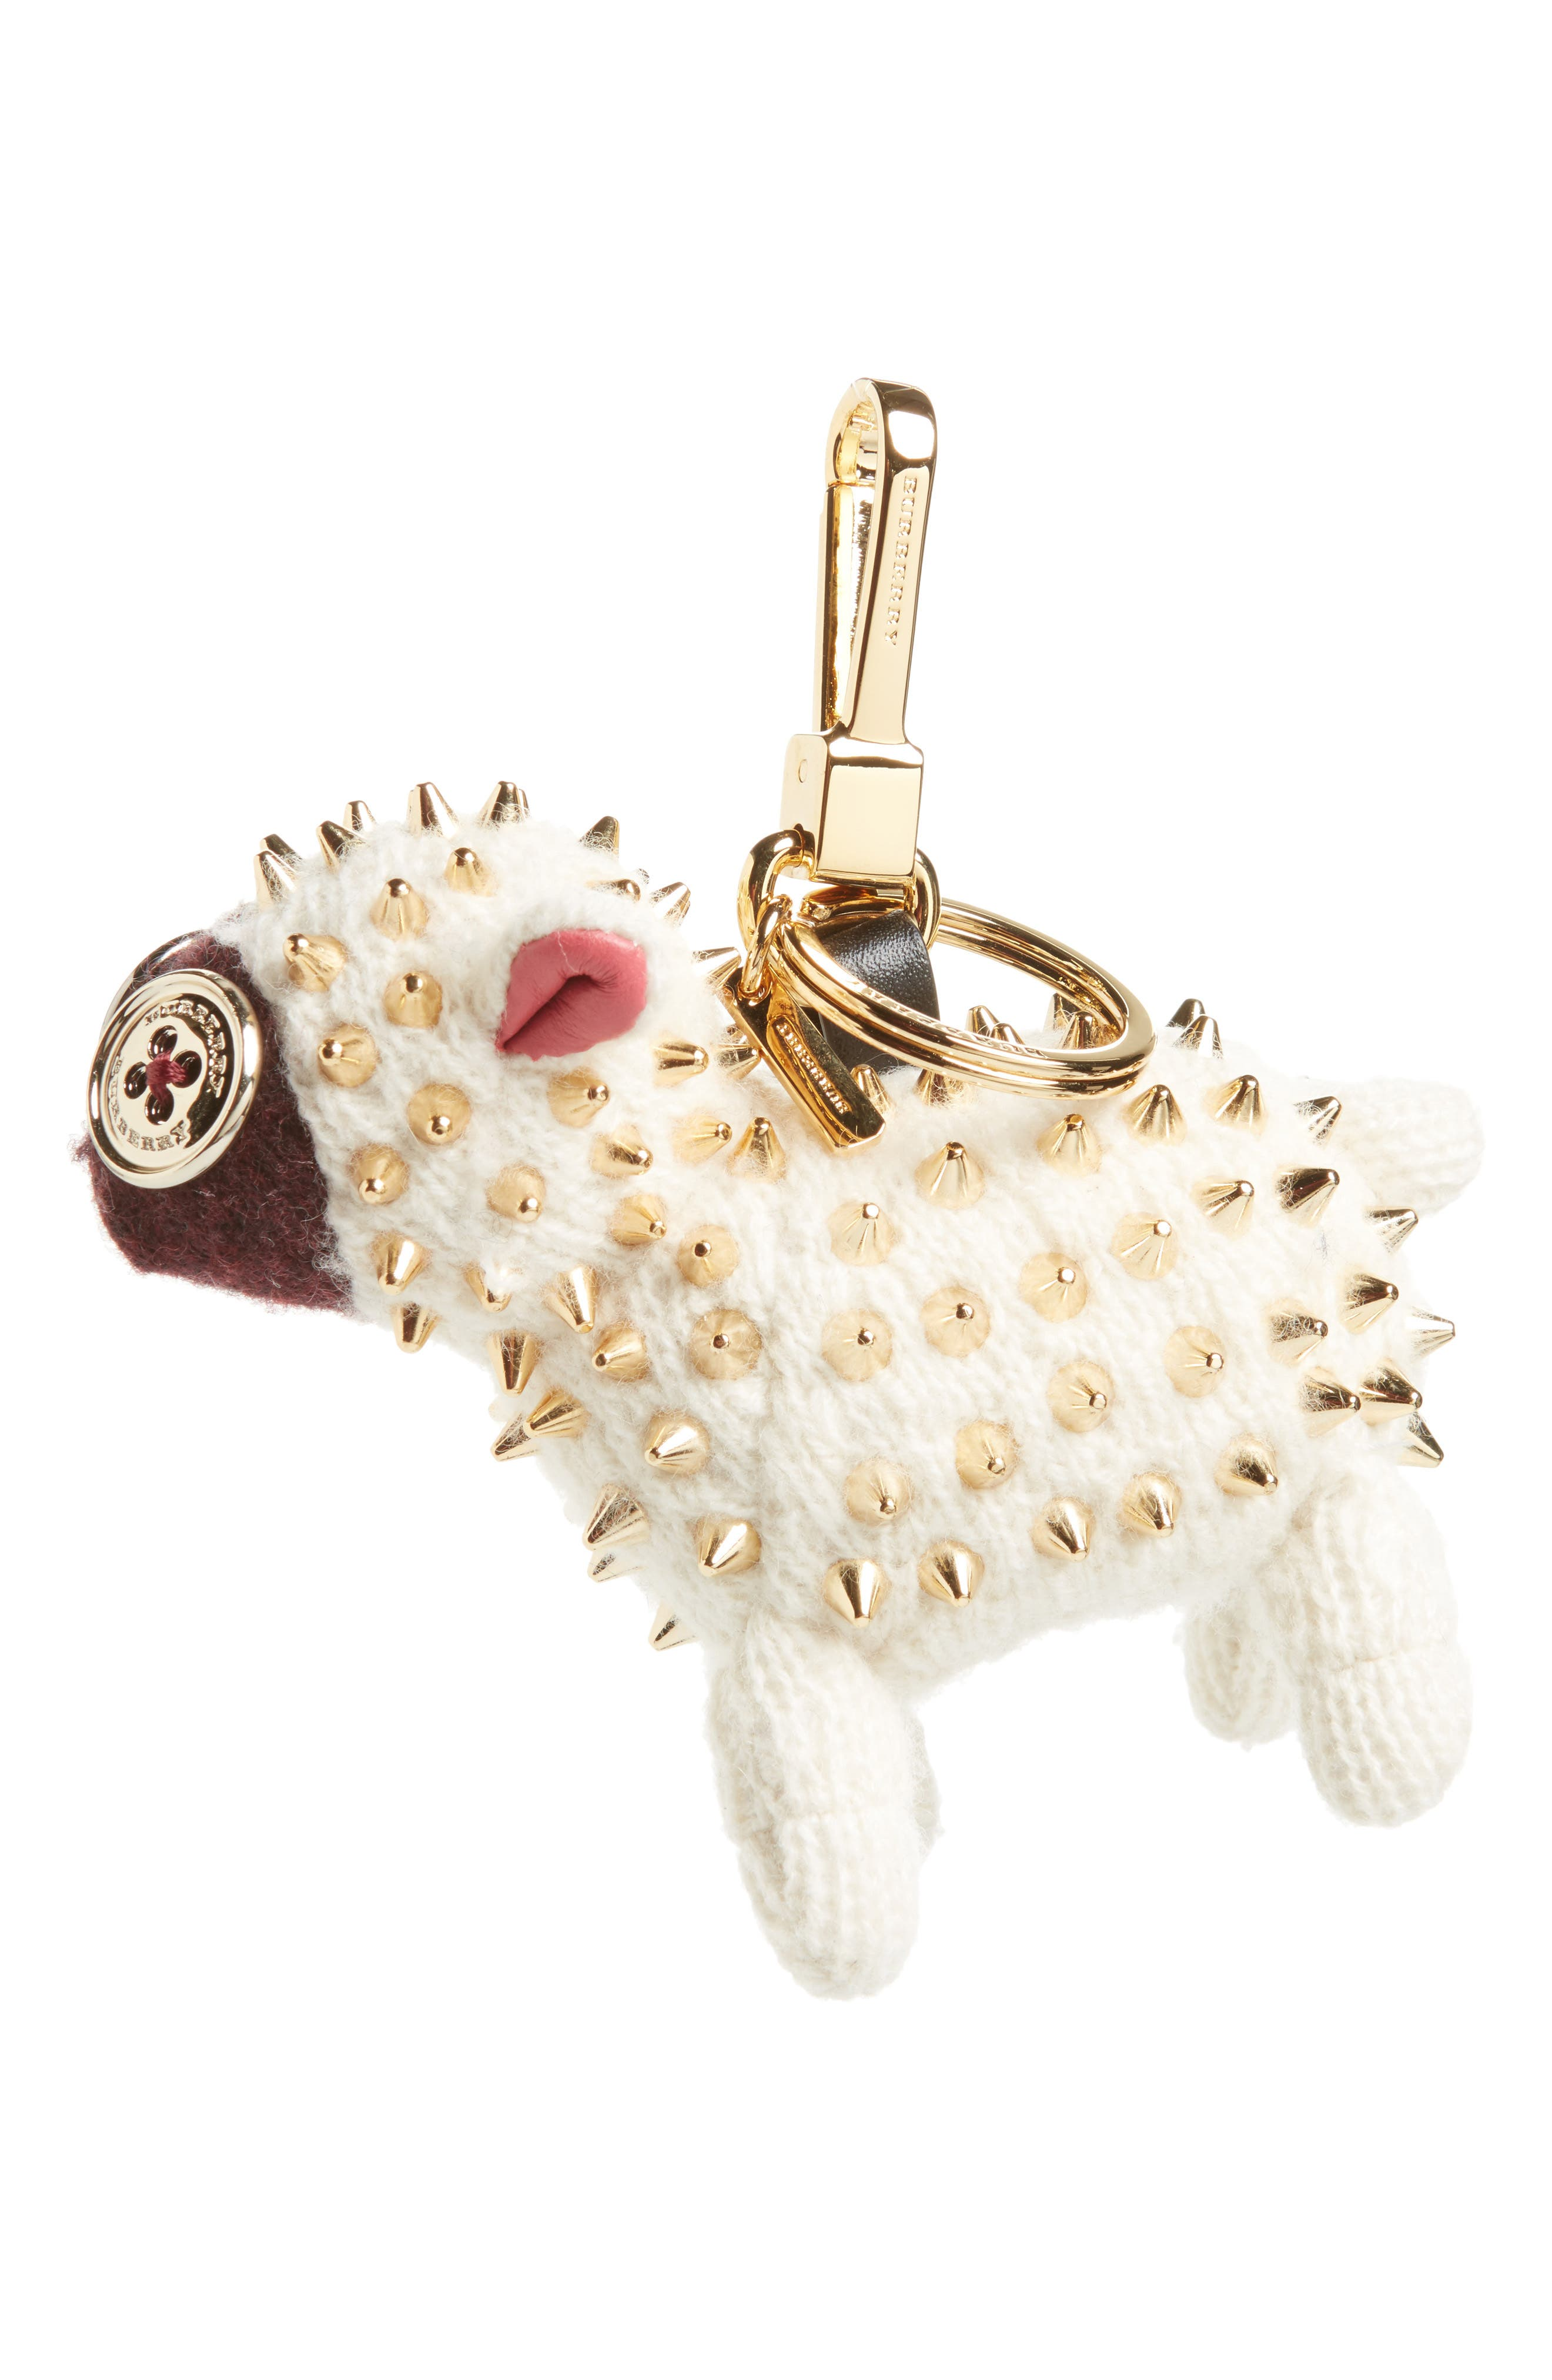 Alternate Image 1 Selected - Burberry Wendy the Sheep Studded Cashmere Bag Charm